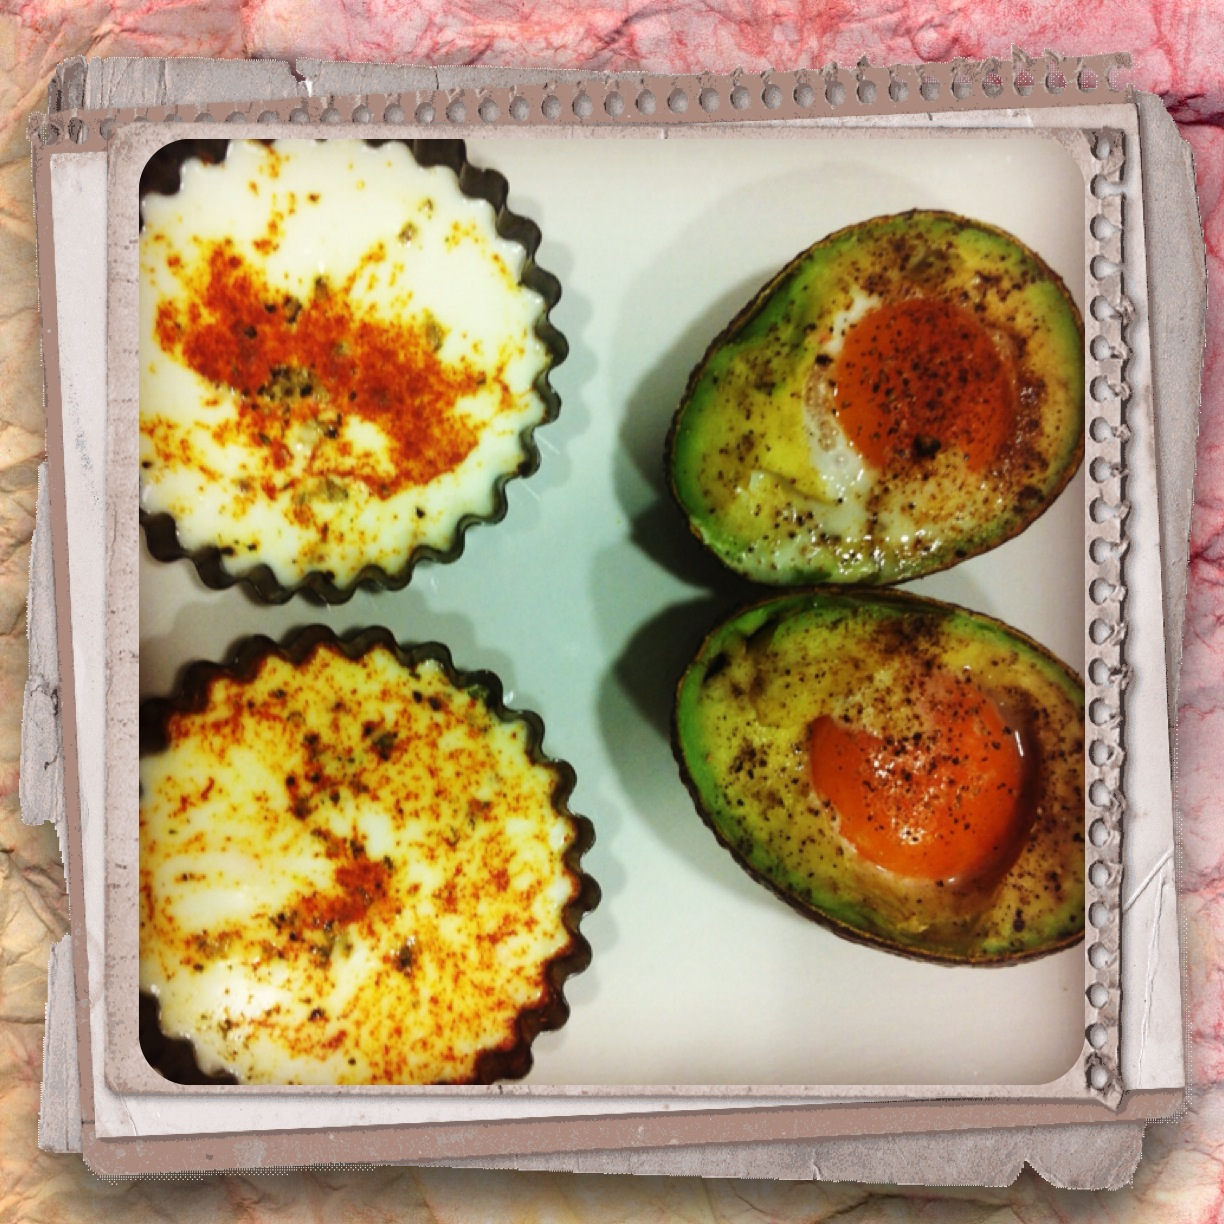 Grilled avocado and egg recipe